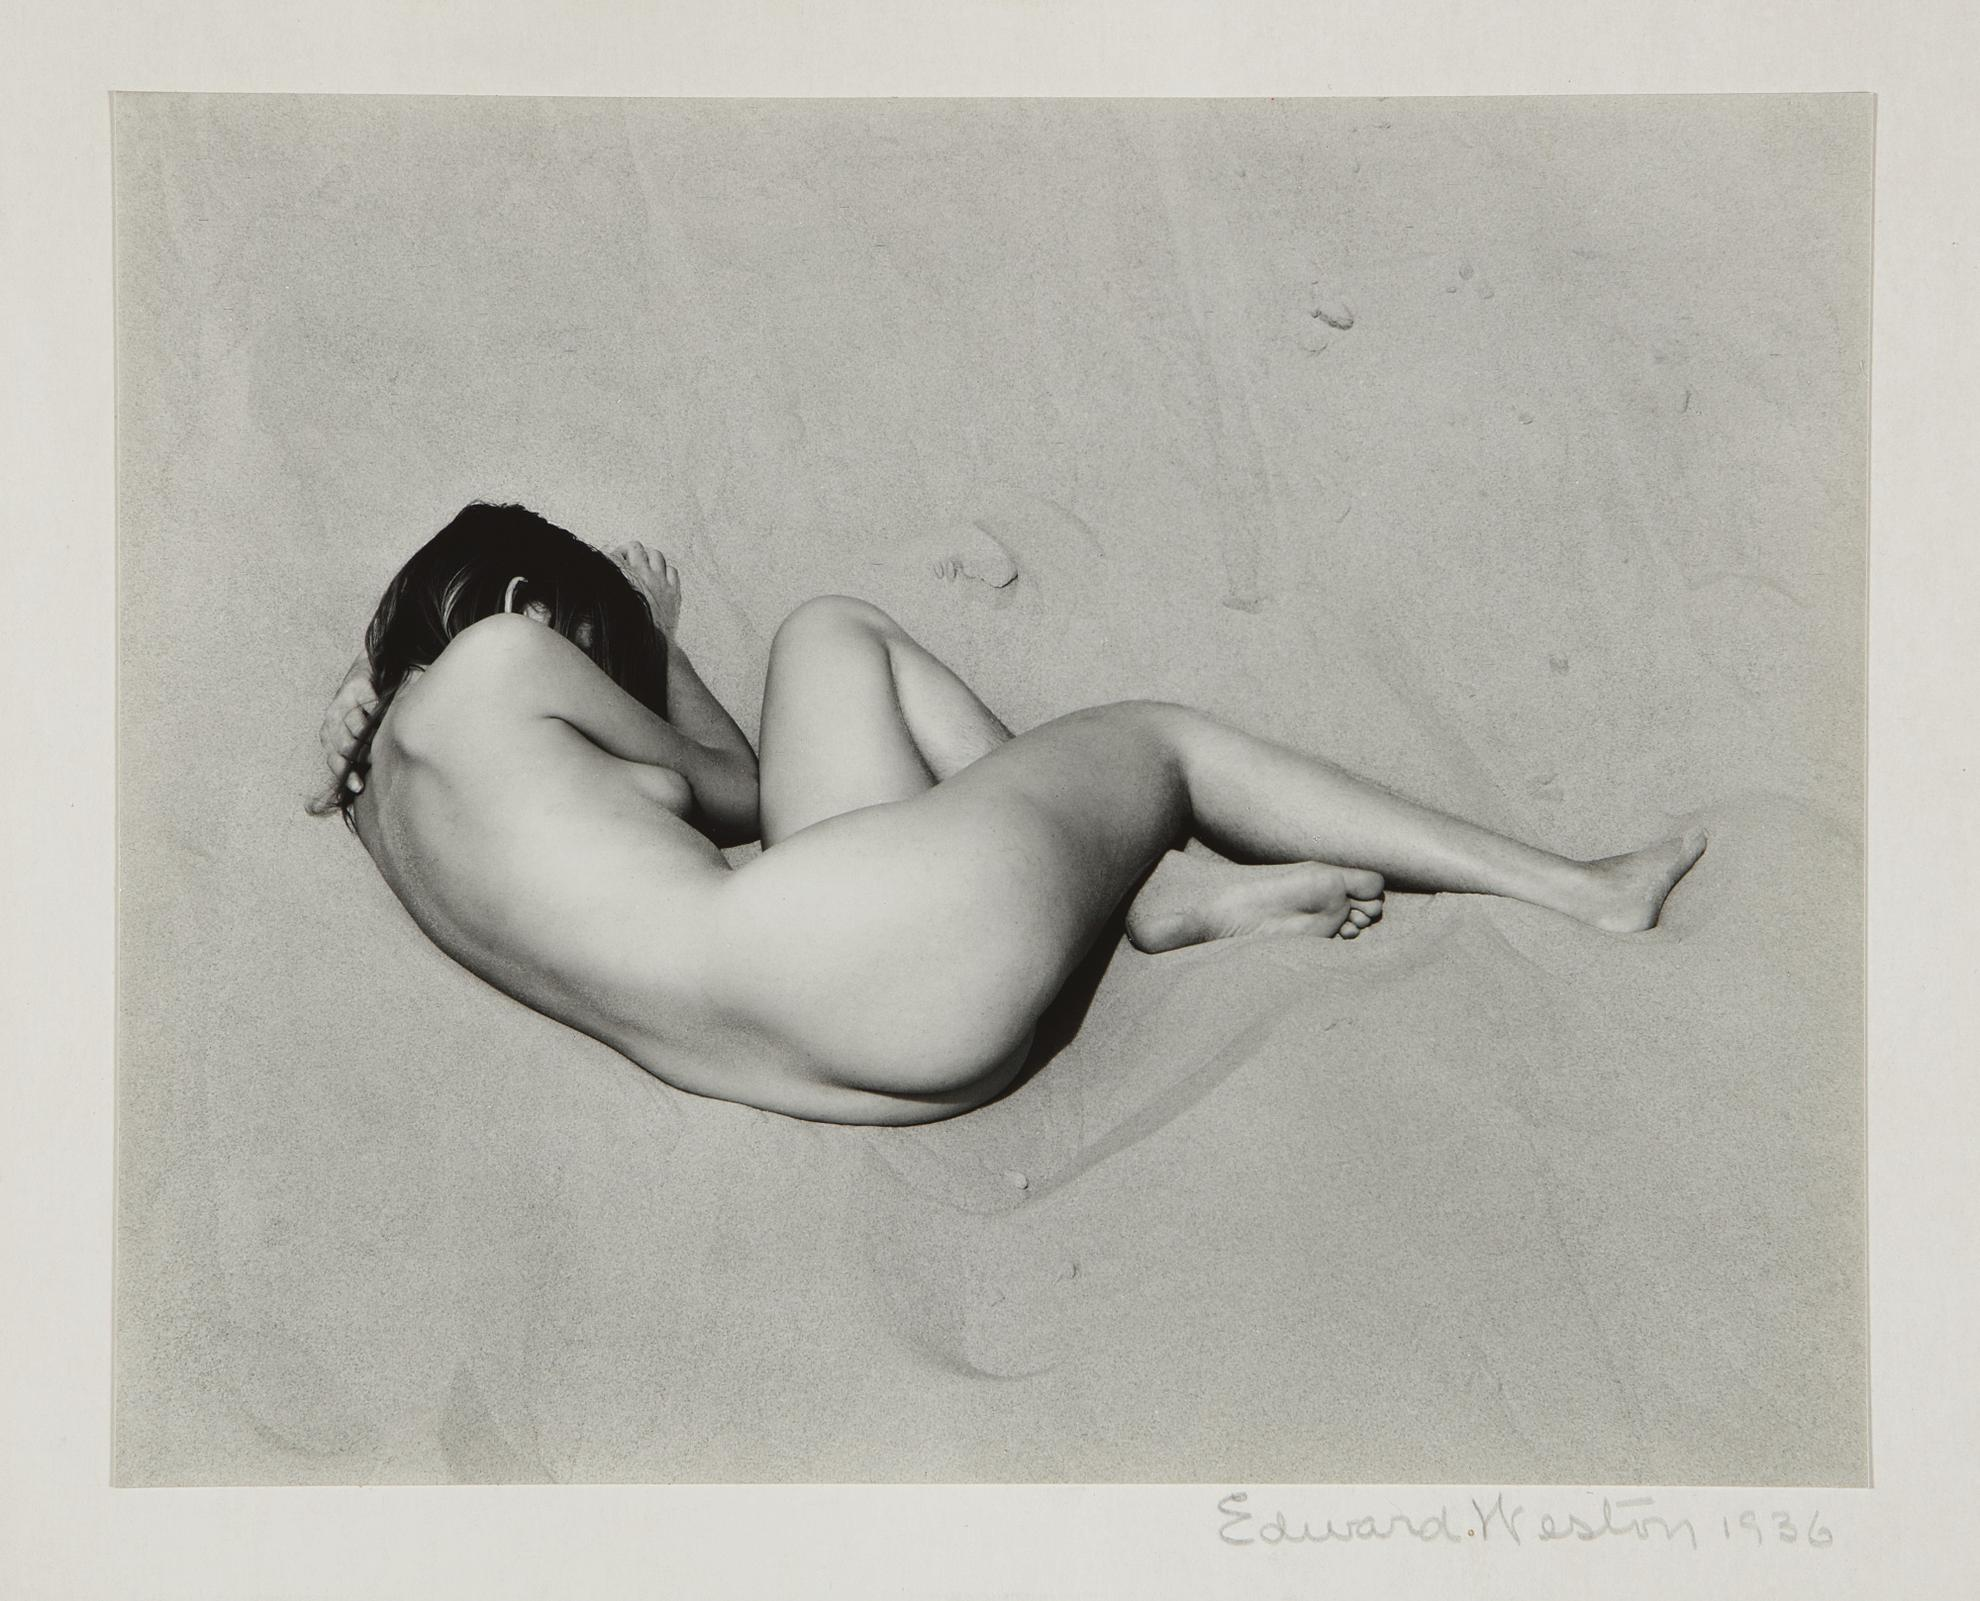 Edward Weston-Nude On Sand-1936